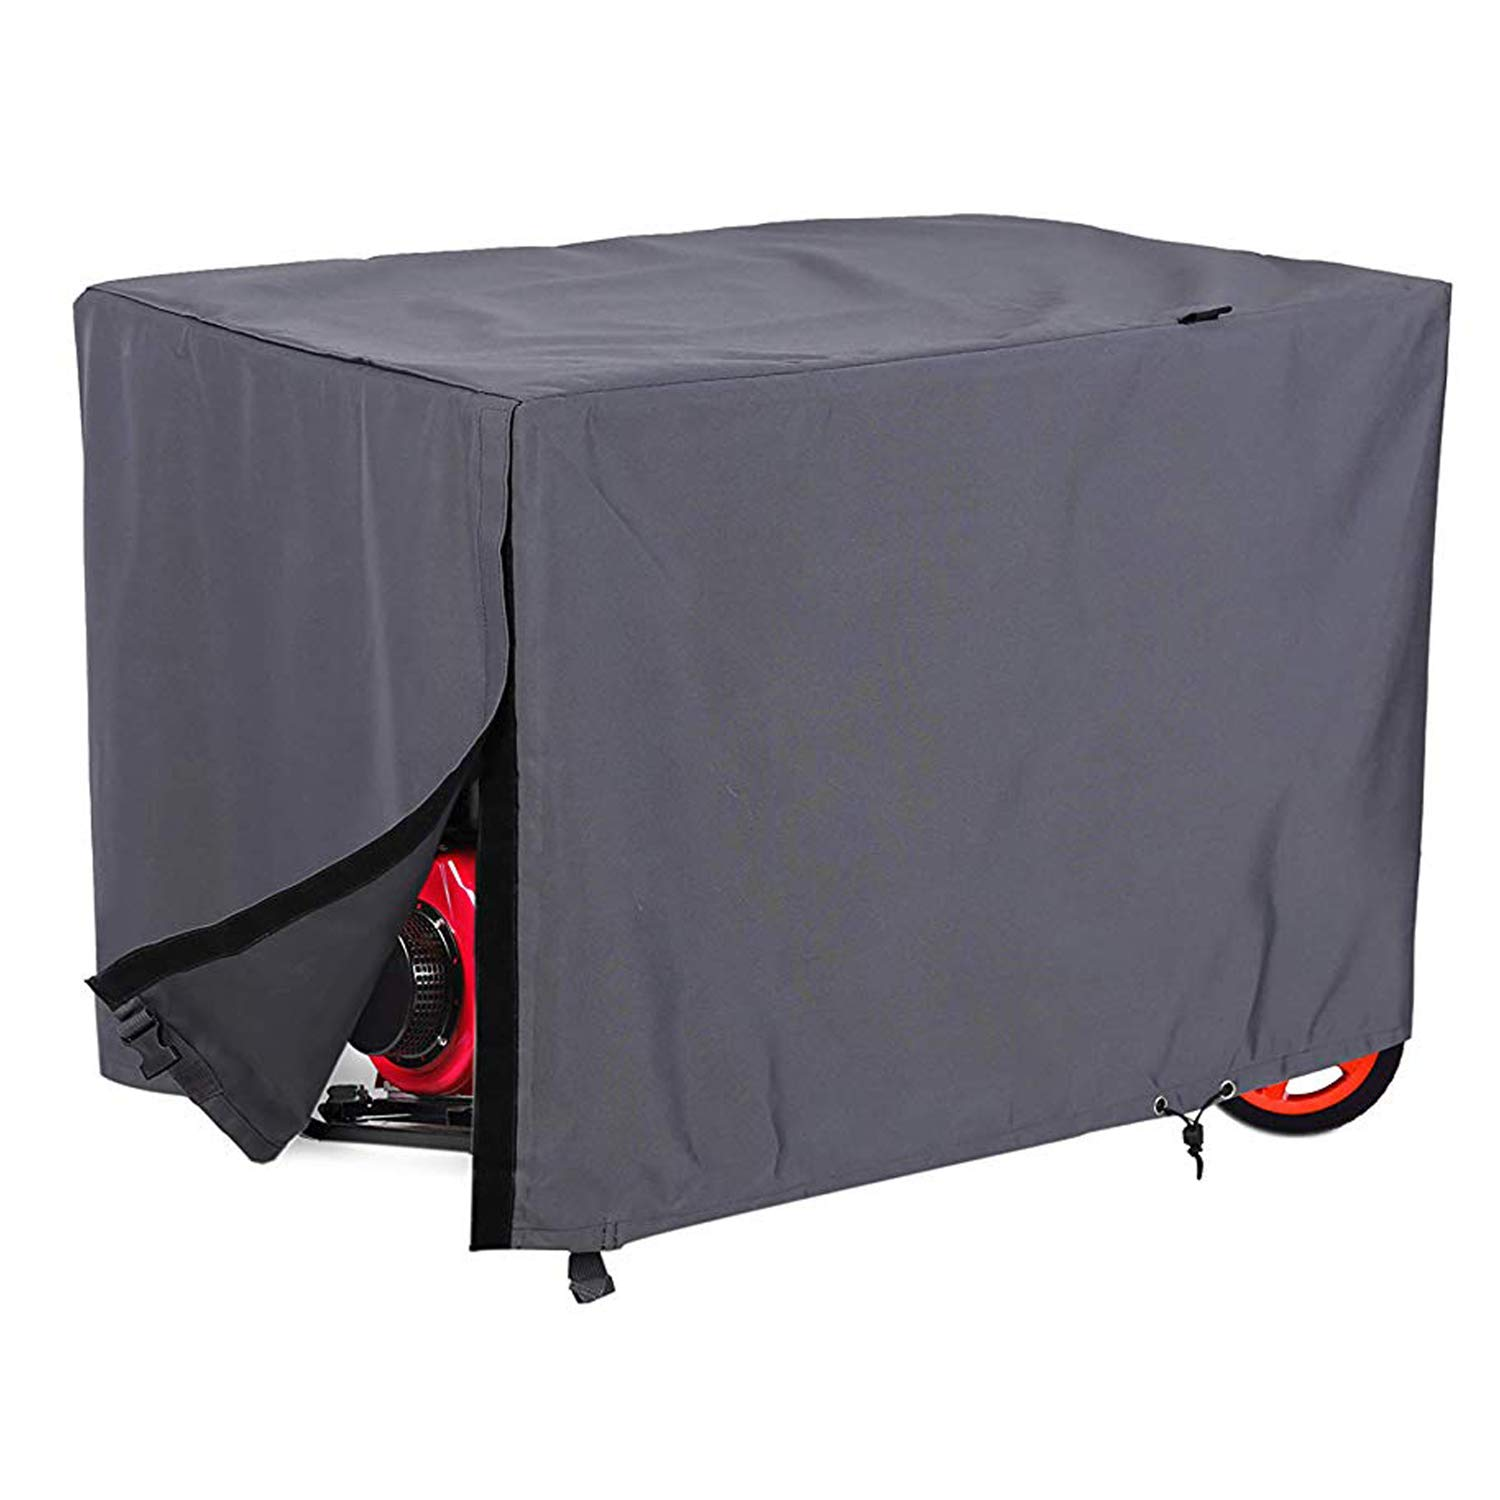 Hybrid Covers - Generator Cover - Enhanced Durability - Dust-Proof - UV Treated Fade, Rip and Water Resistant Fabric - Secure Fit - Buckles and Draw Cord - Small by Hybrid Covers